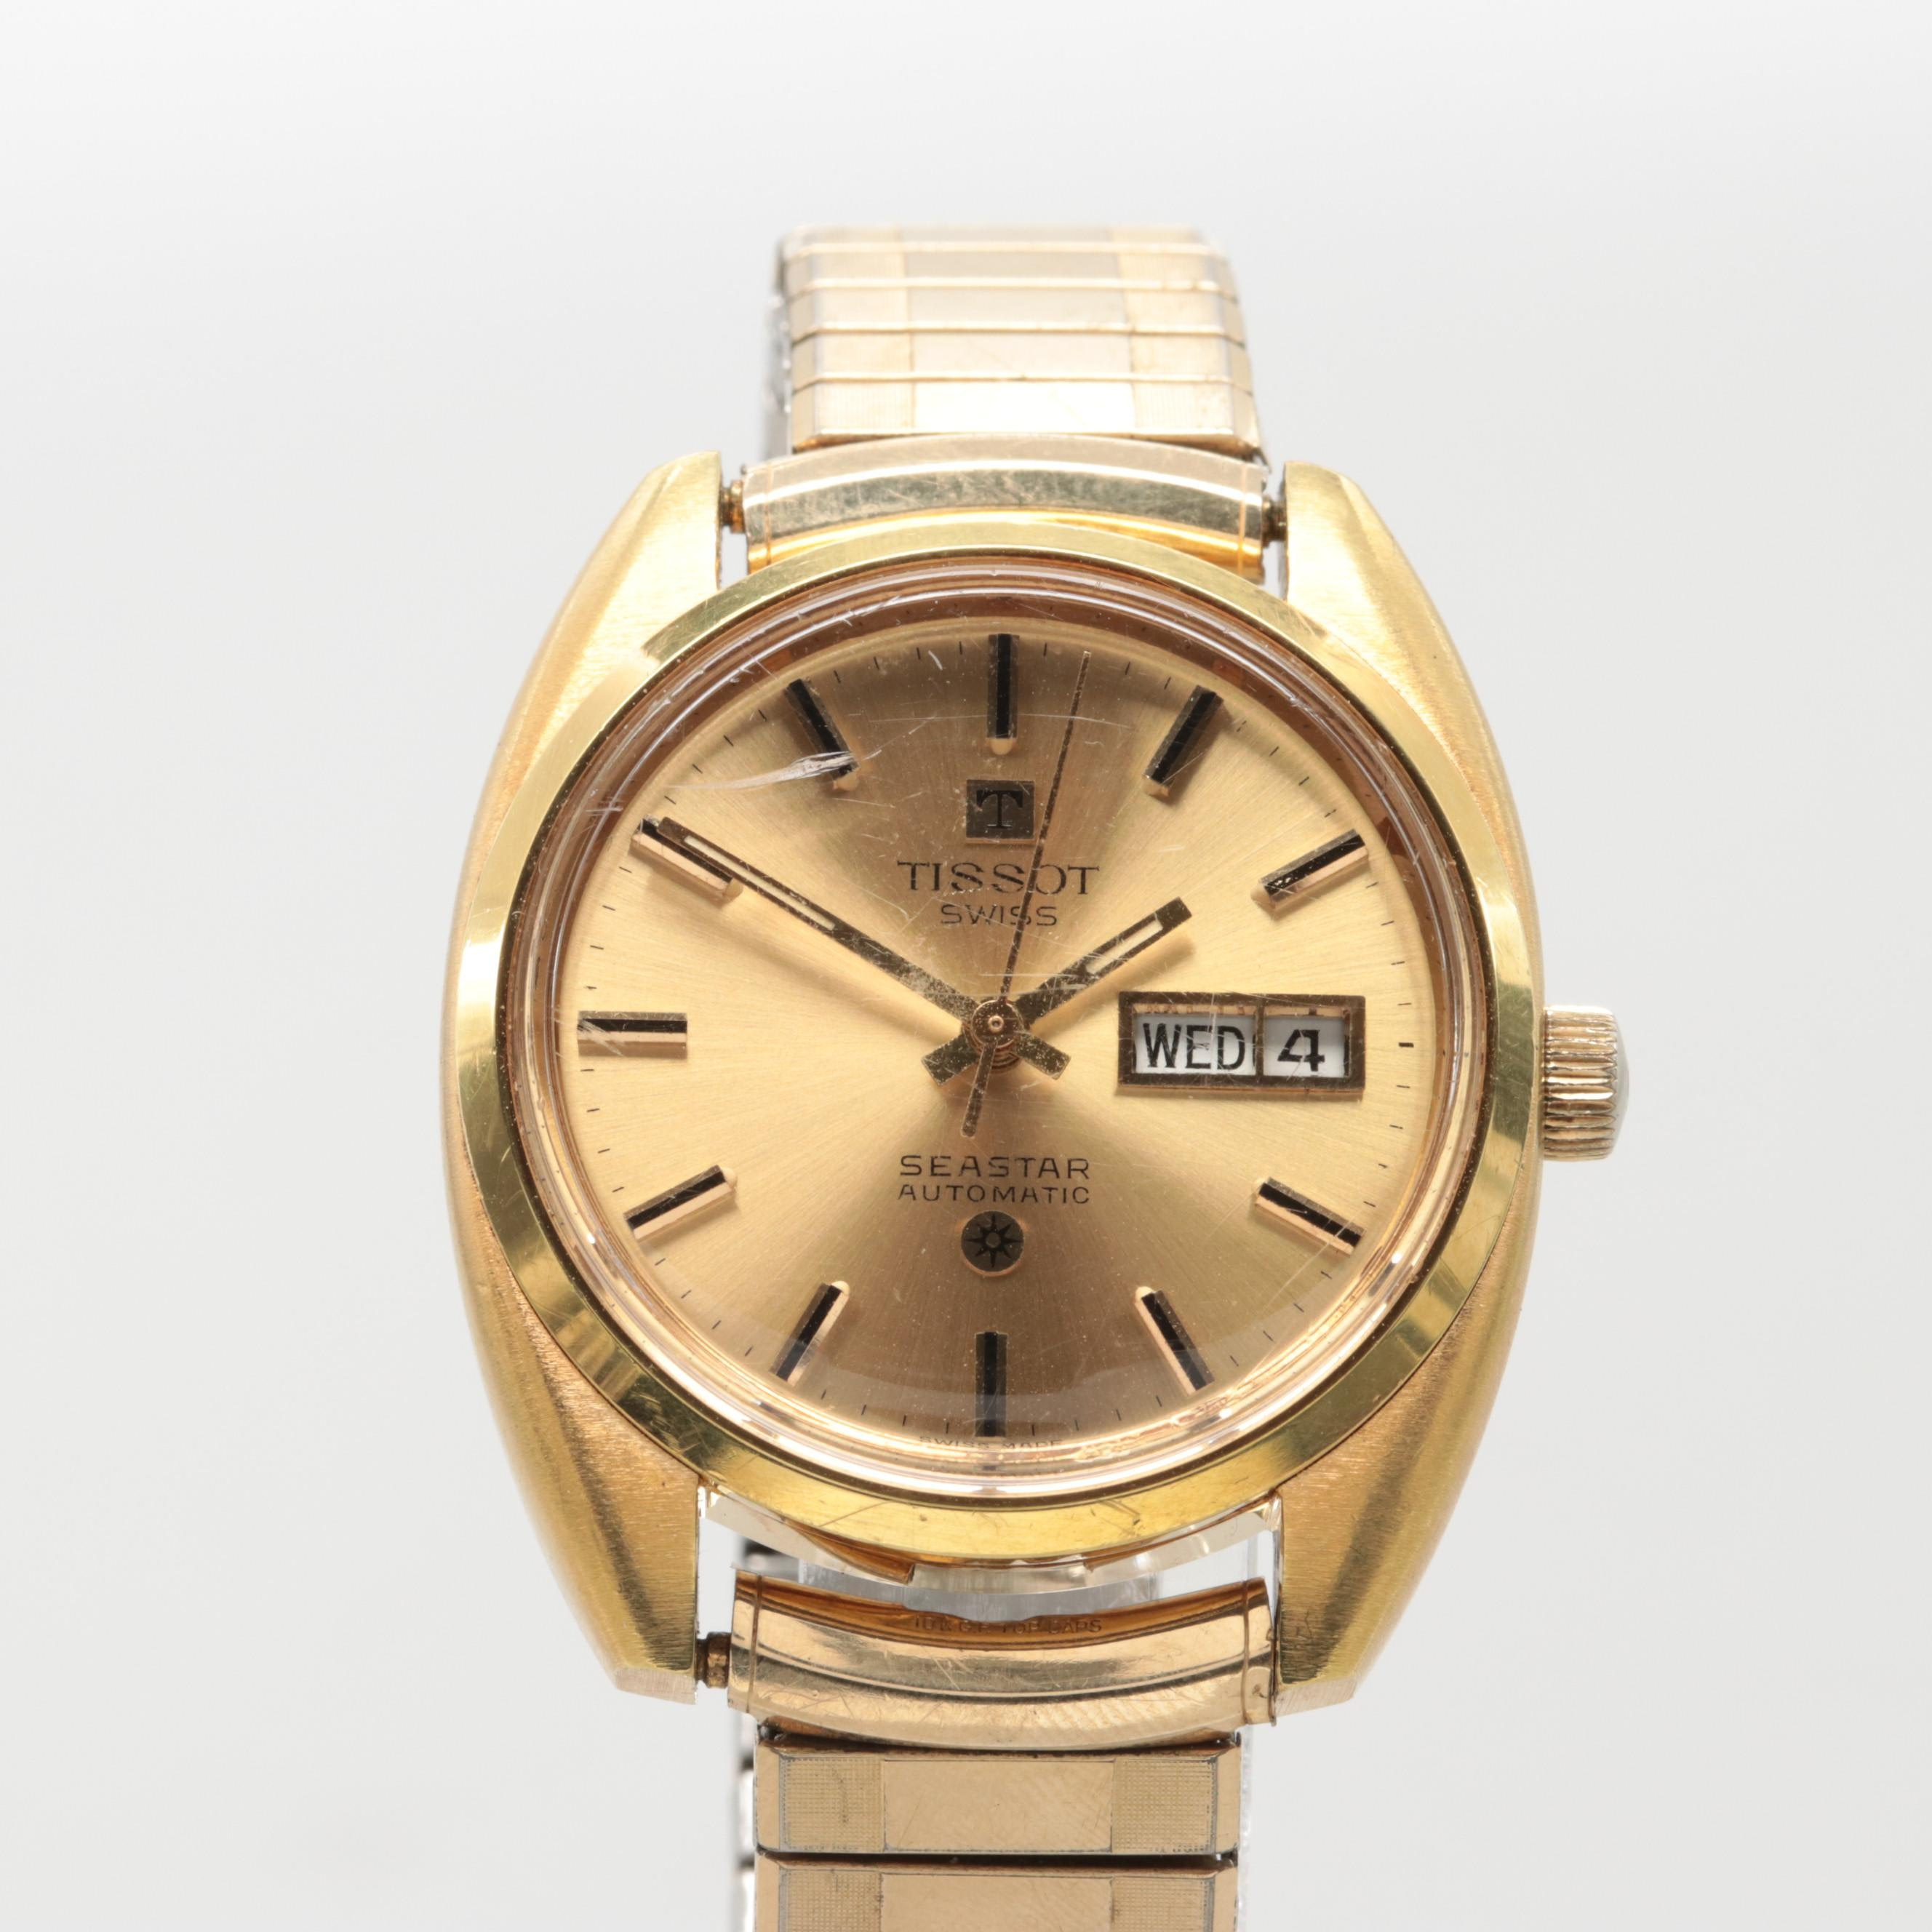 Vintage Tissot Gold Tone Seastar Automatic Wristwatch With Day-Date Window